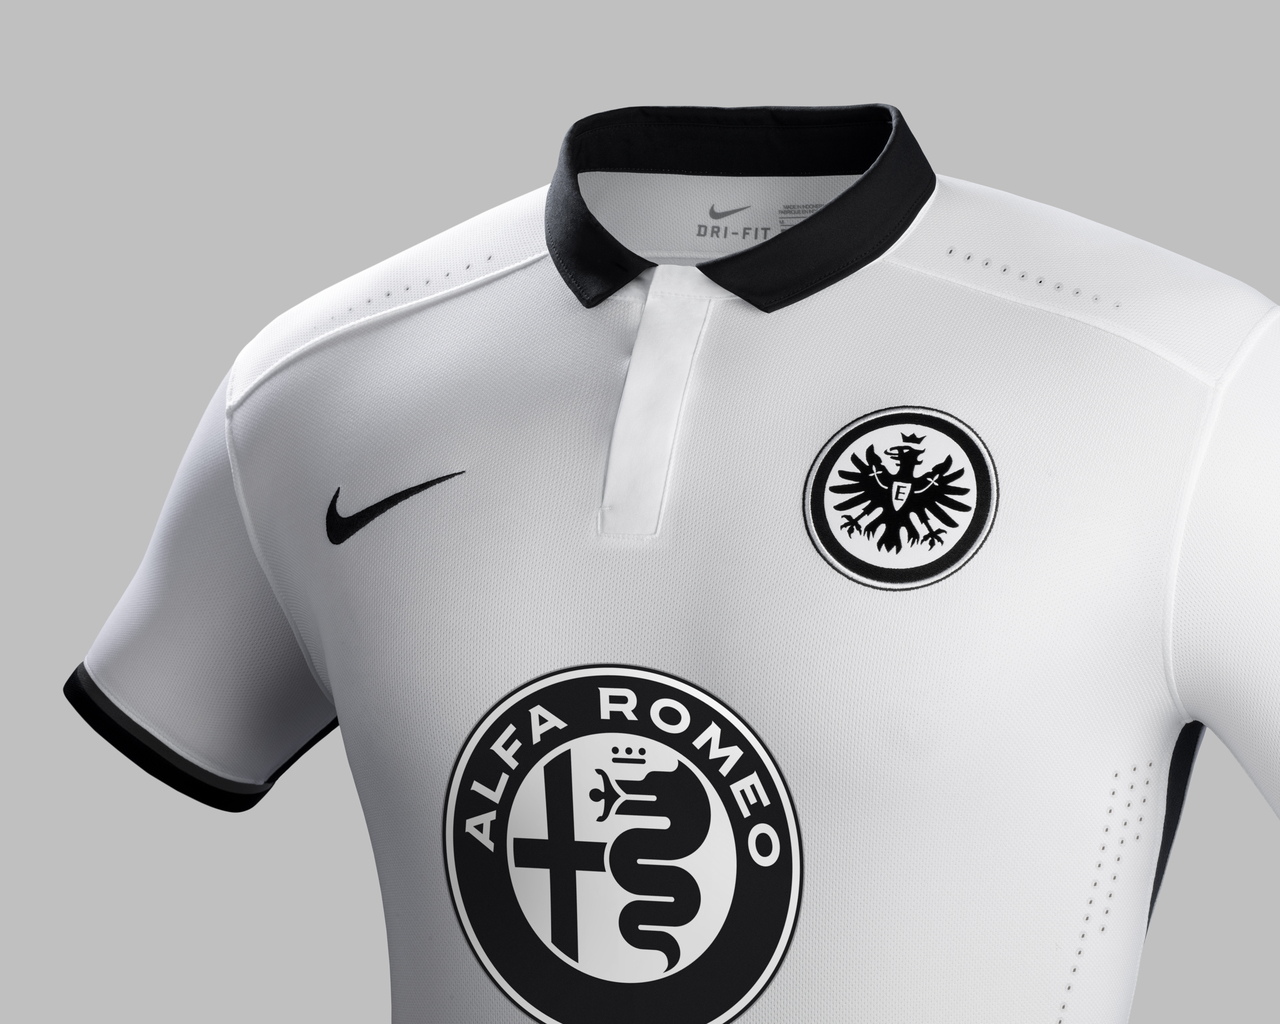 a360bb01524 Click to enlarge image eintracht-frankfurt-2015-2016-nike-away- ...